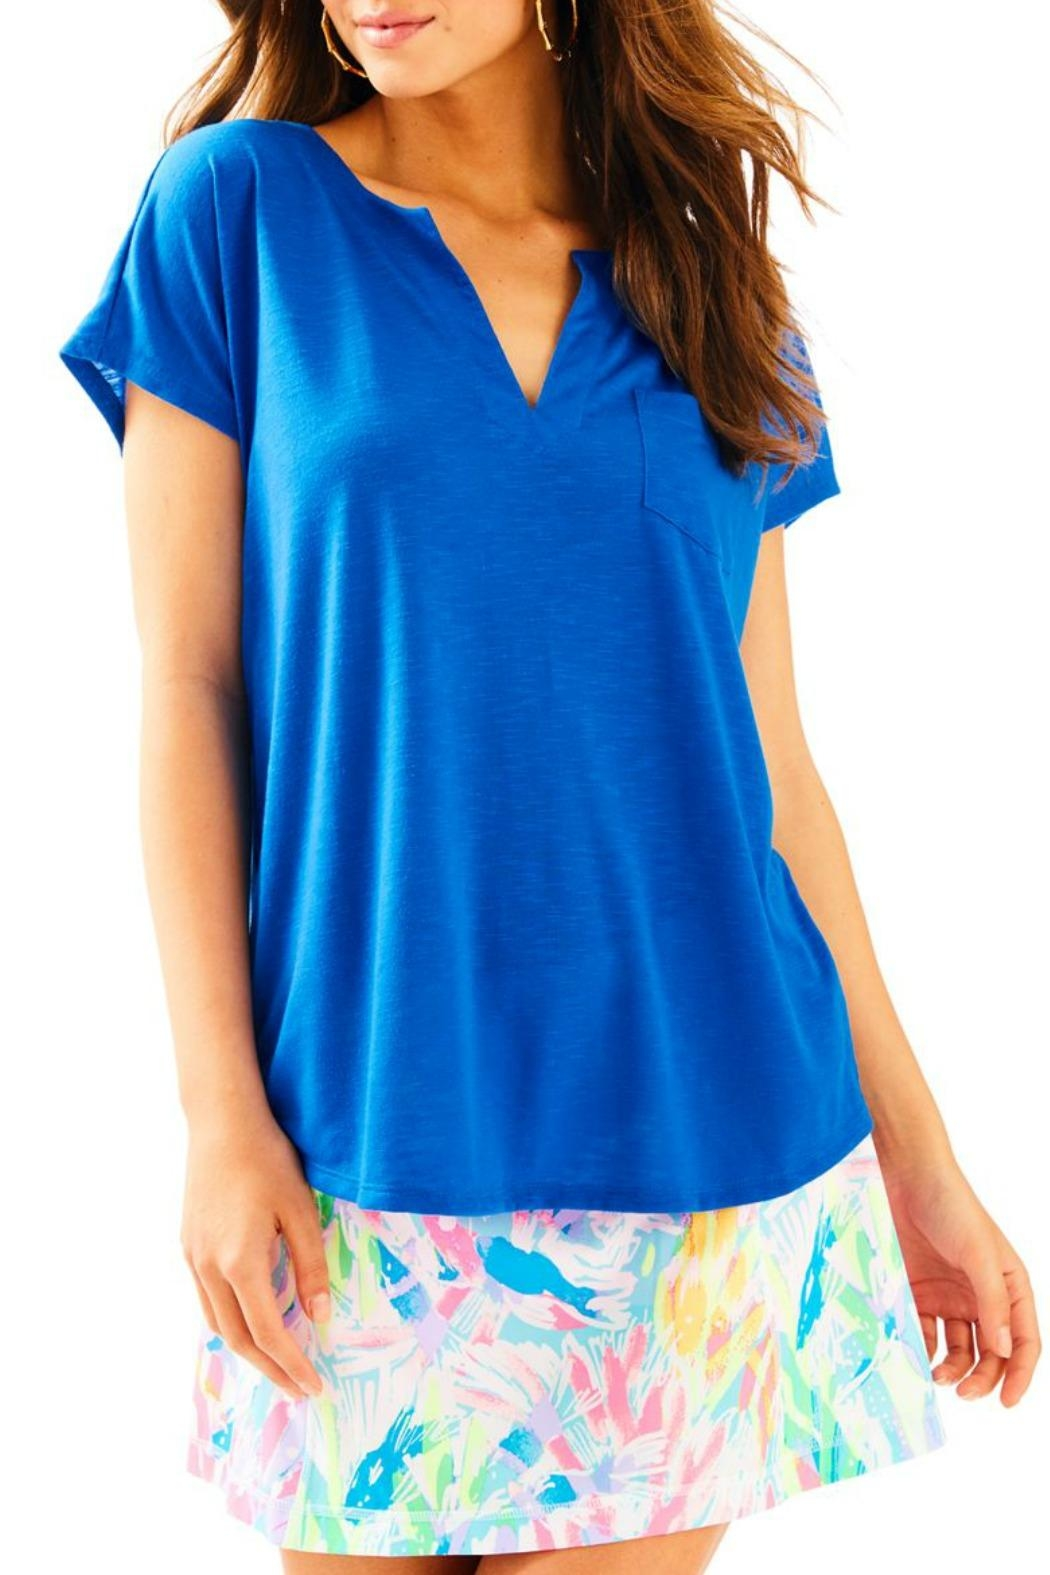 Lilly Pulitzer Luxletic Brodie T-Shirt - Main Image